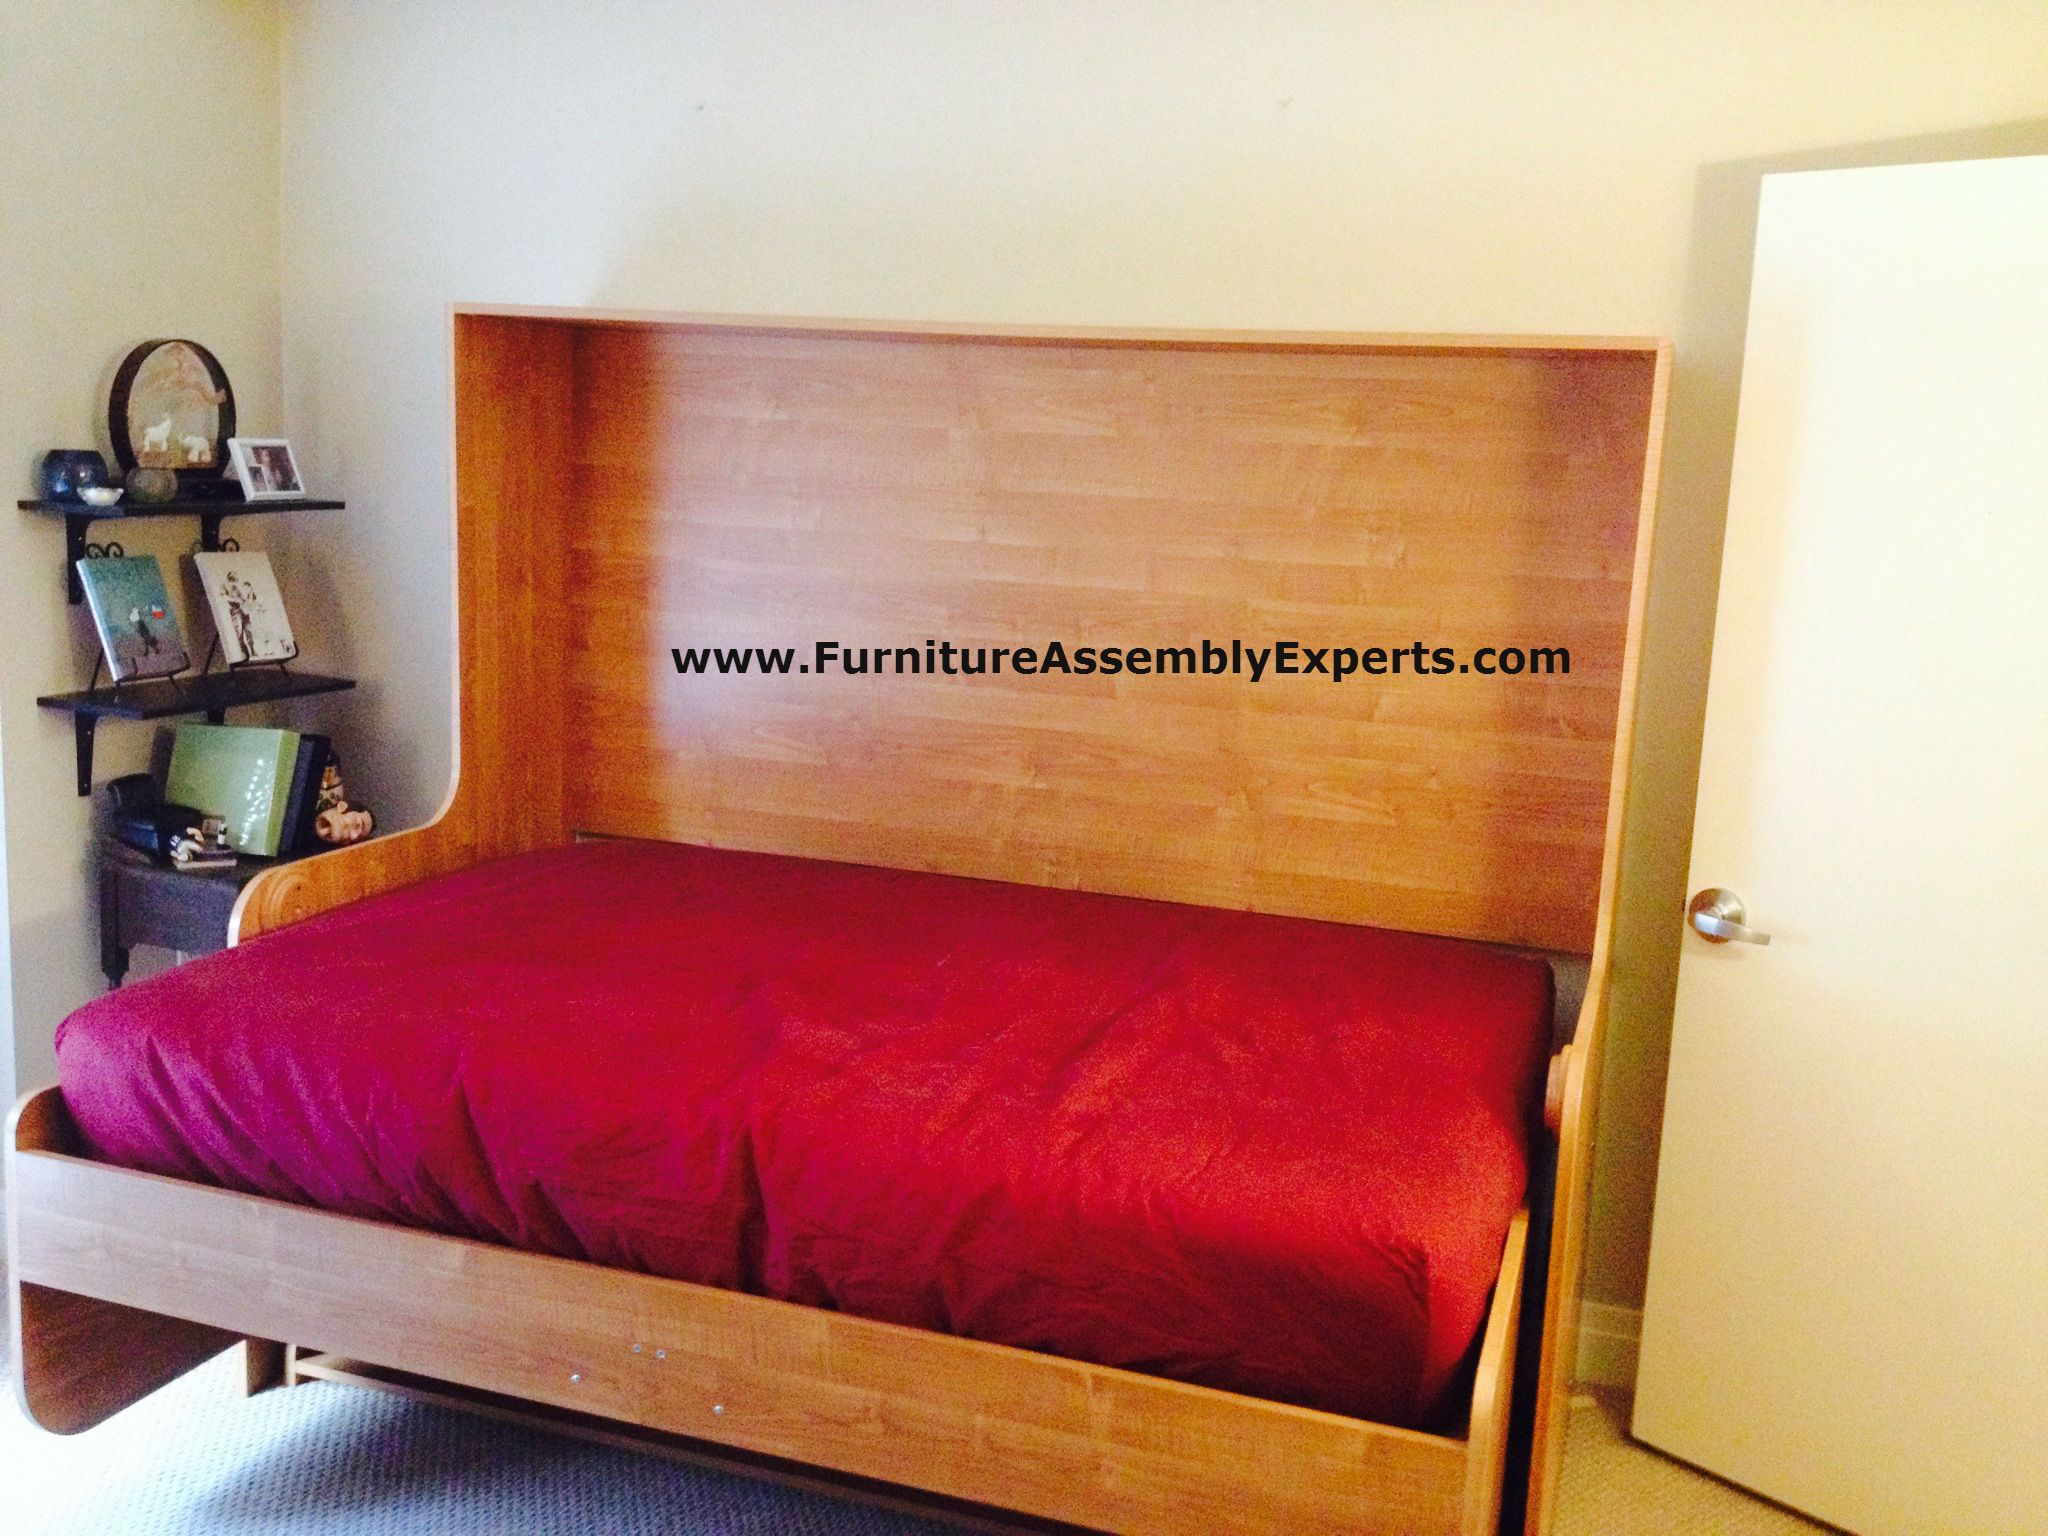 Murphy Bed From Bredabeds Com Assembled In Northern Virginia By Furniture Assembly Experts Llc Murphy Bed Furniture Assembly Bed